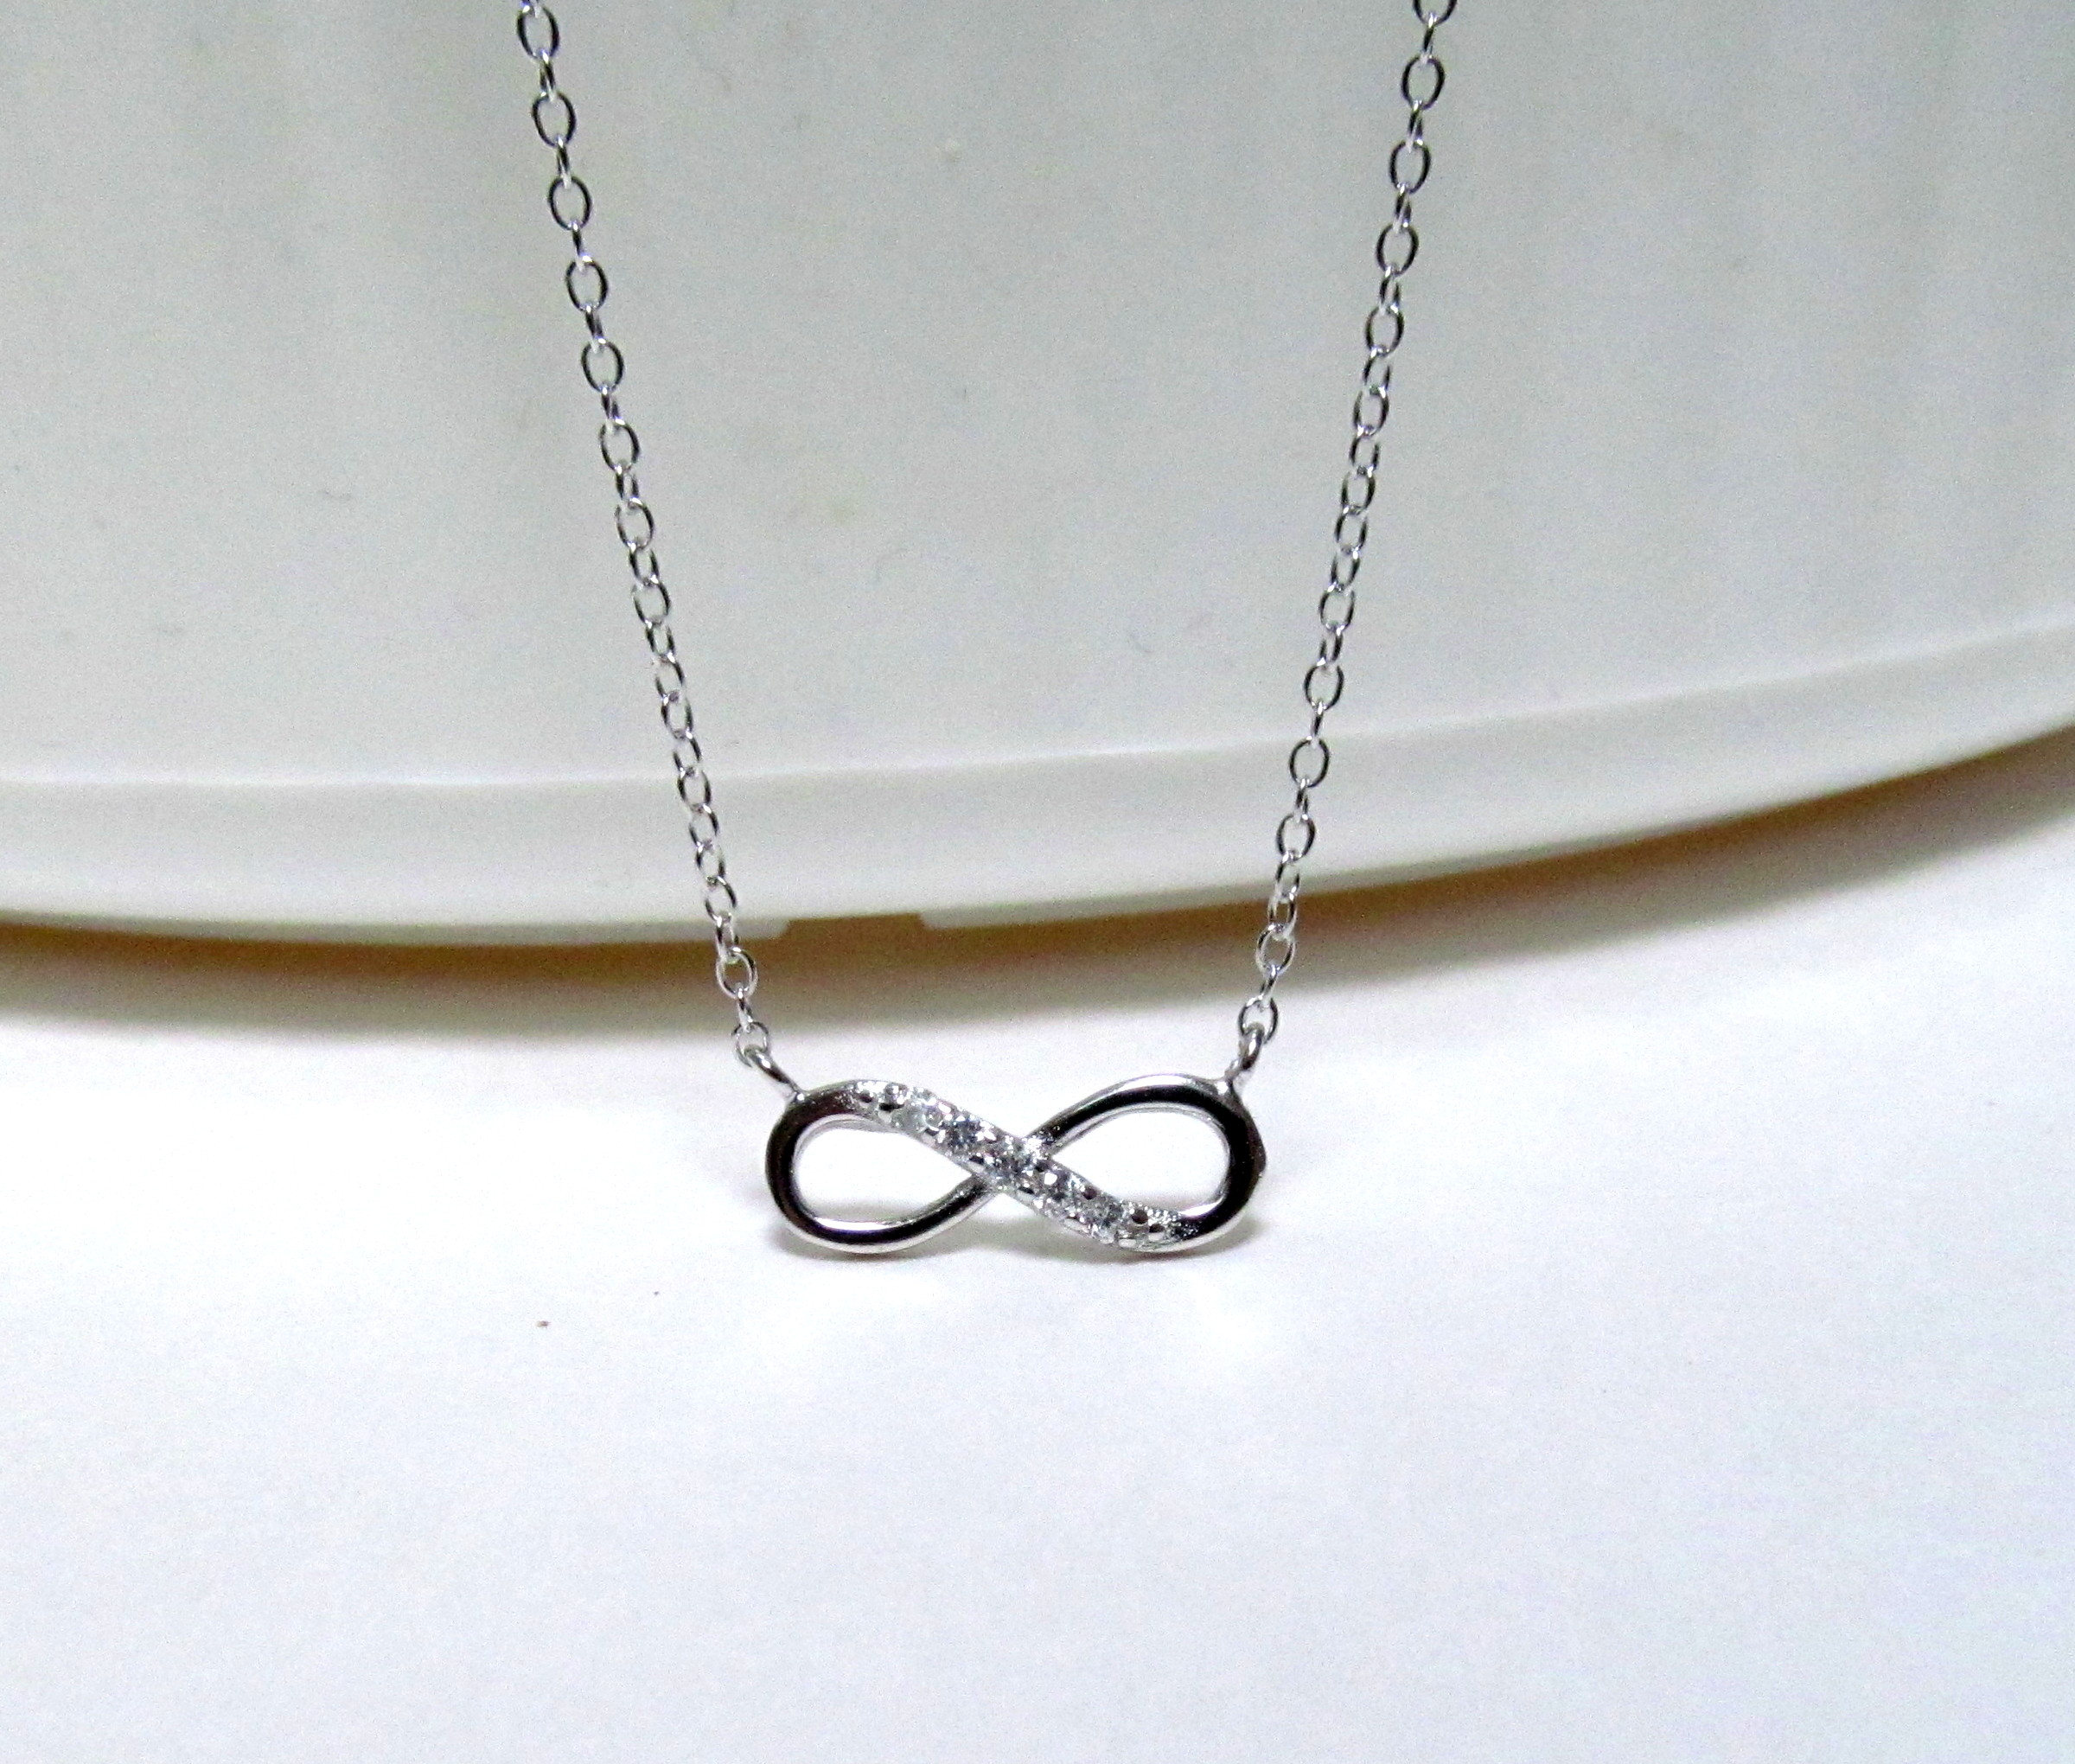 jewelry co realreal necklaces products the silver tiffany necklace pendant sterling and enlarged infinity